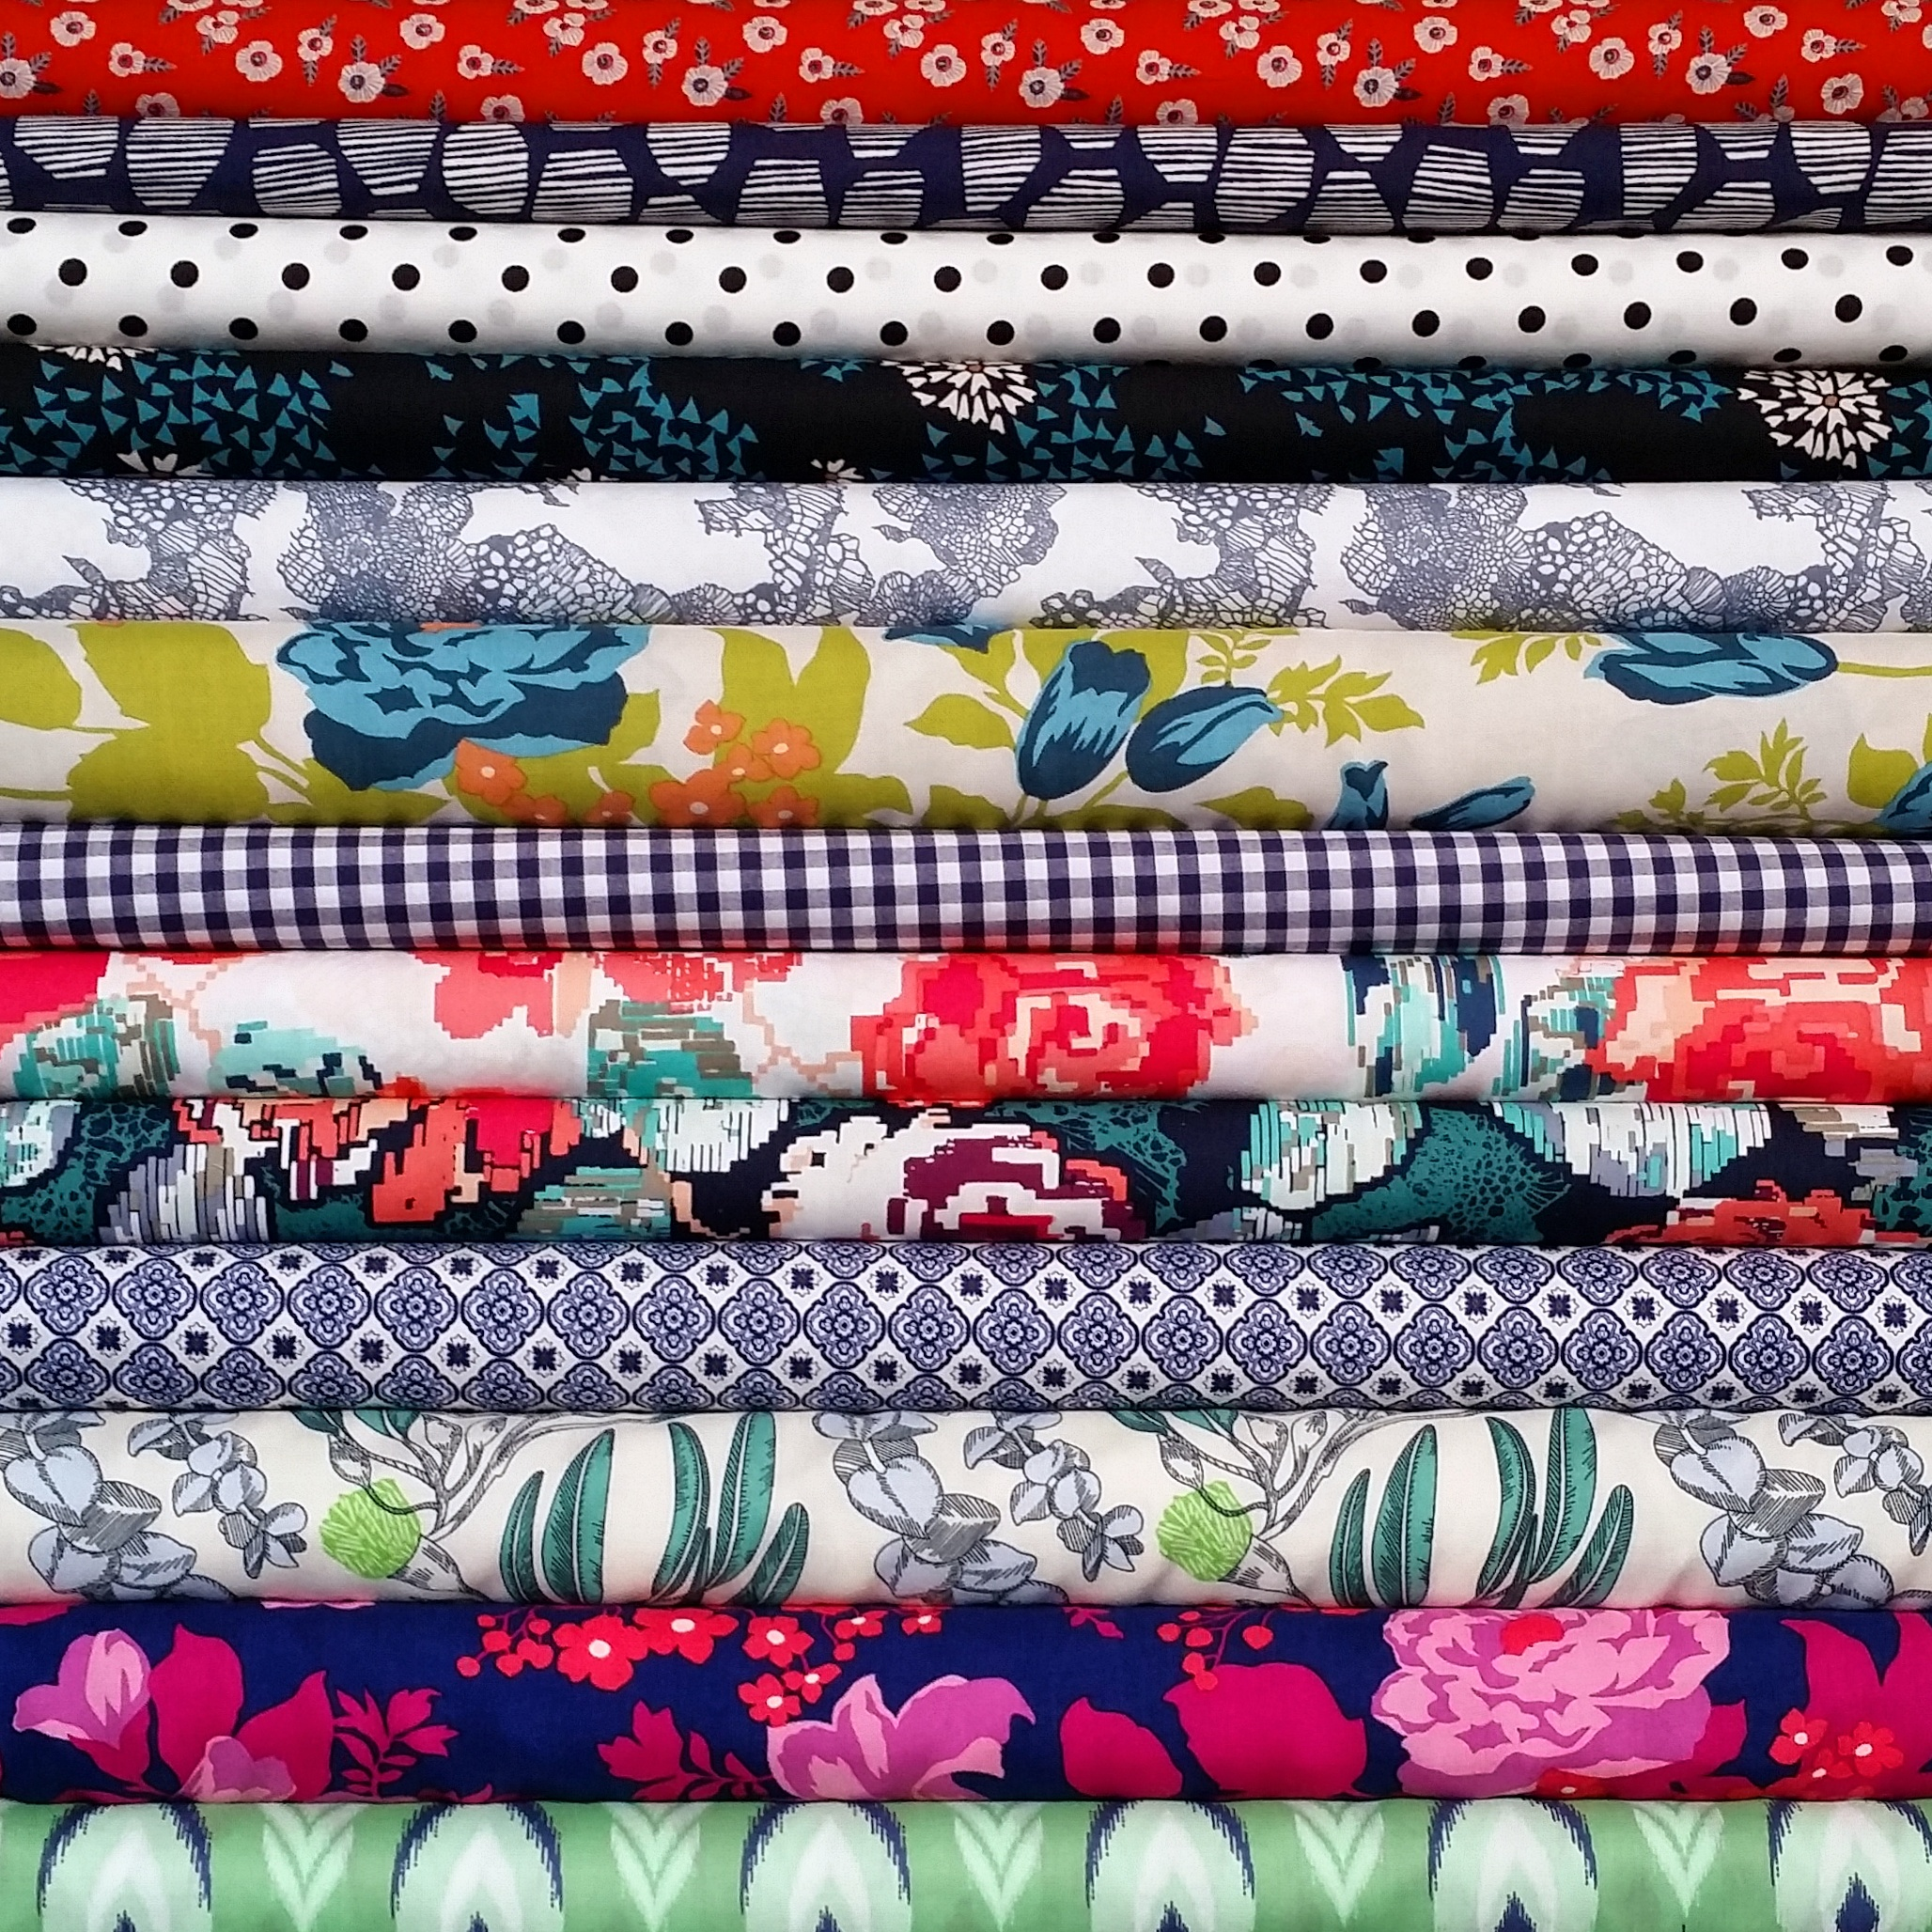 Some fabrics from the Splendid Stitch.